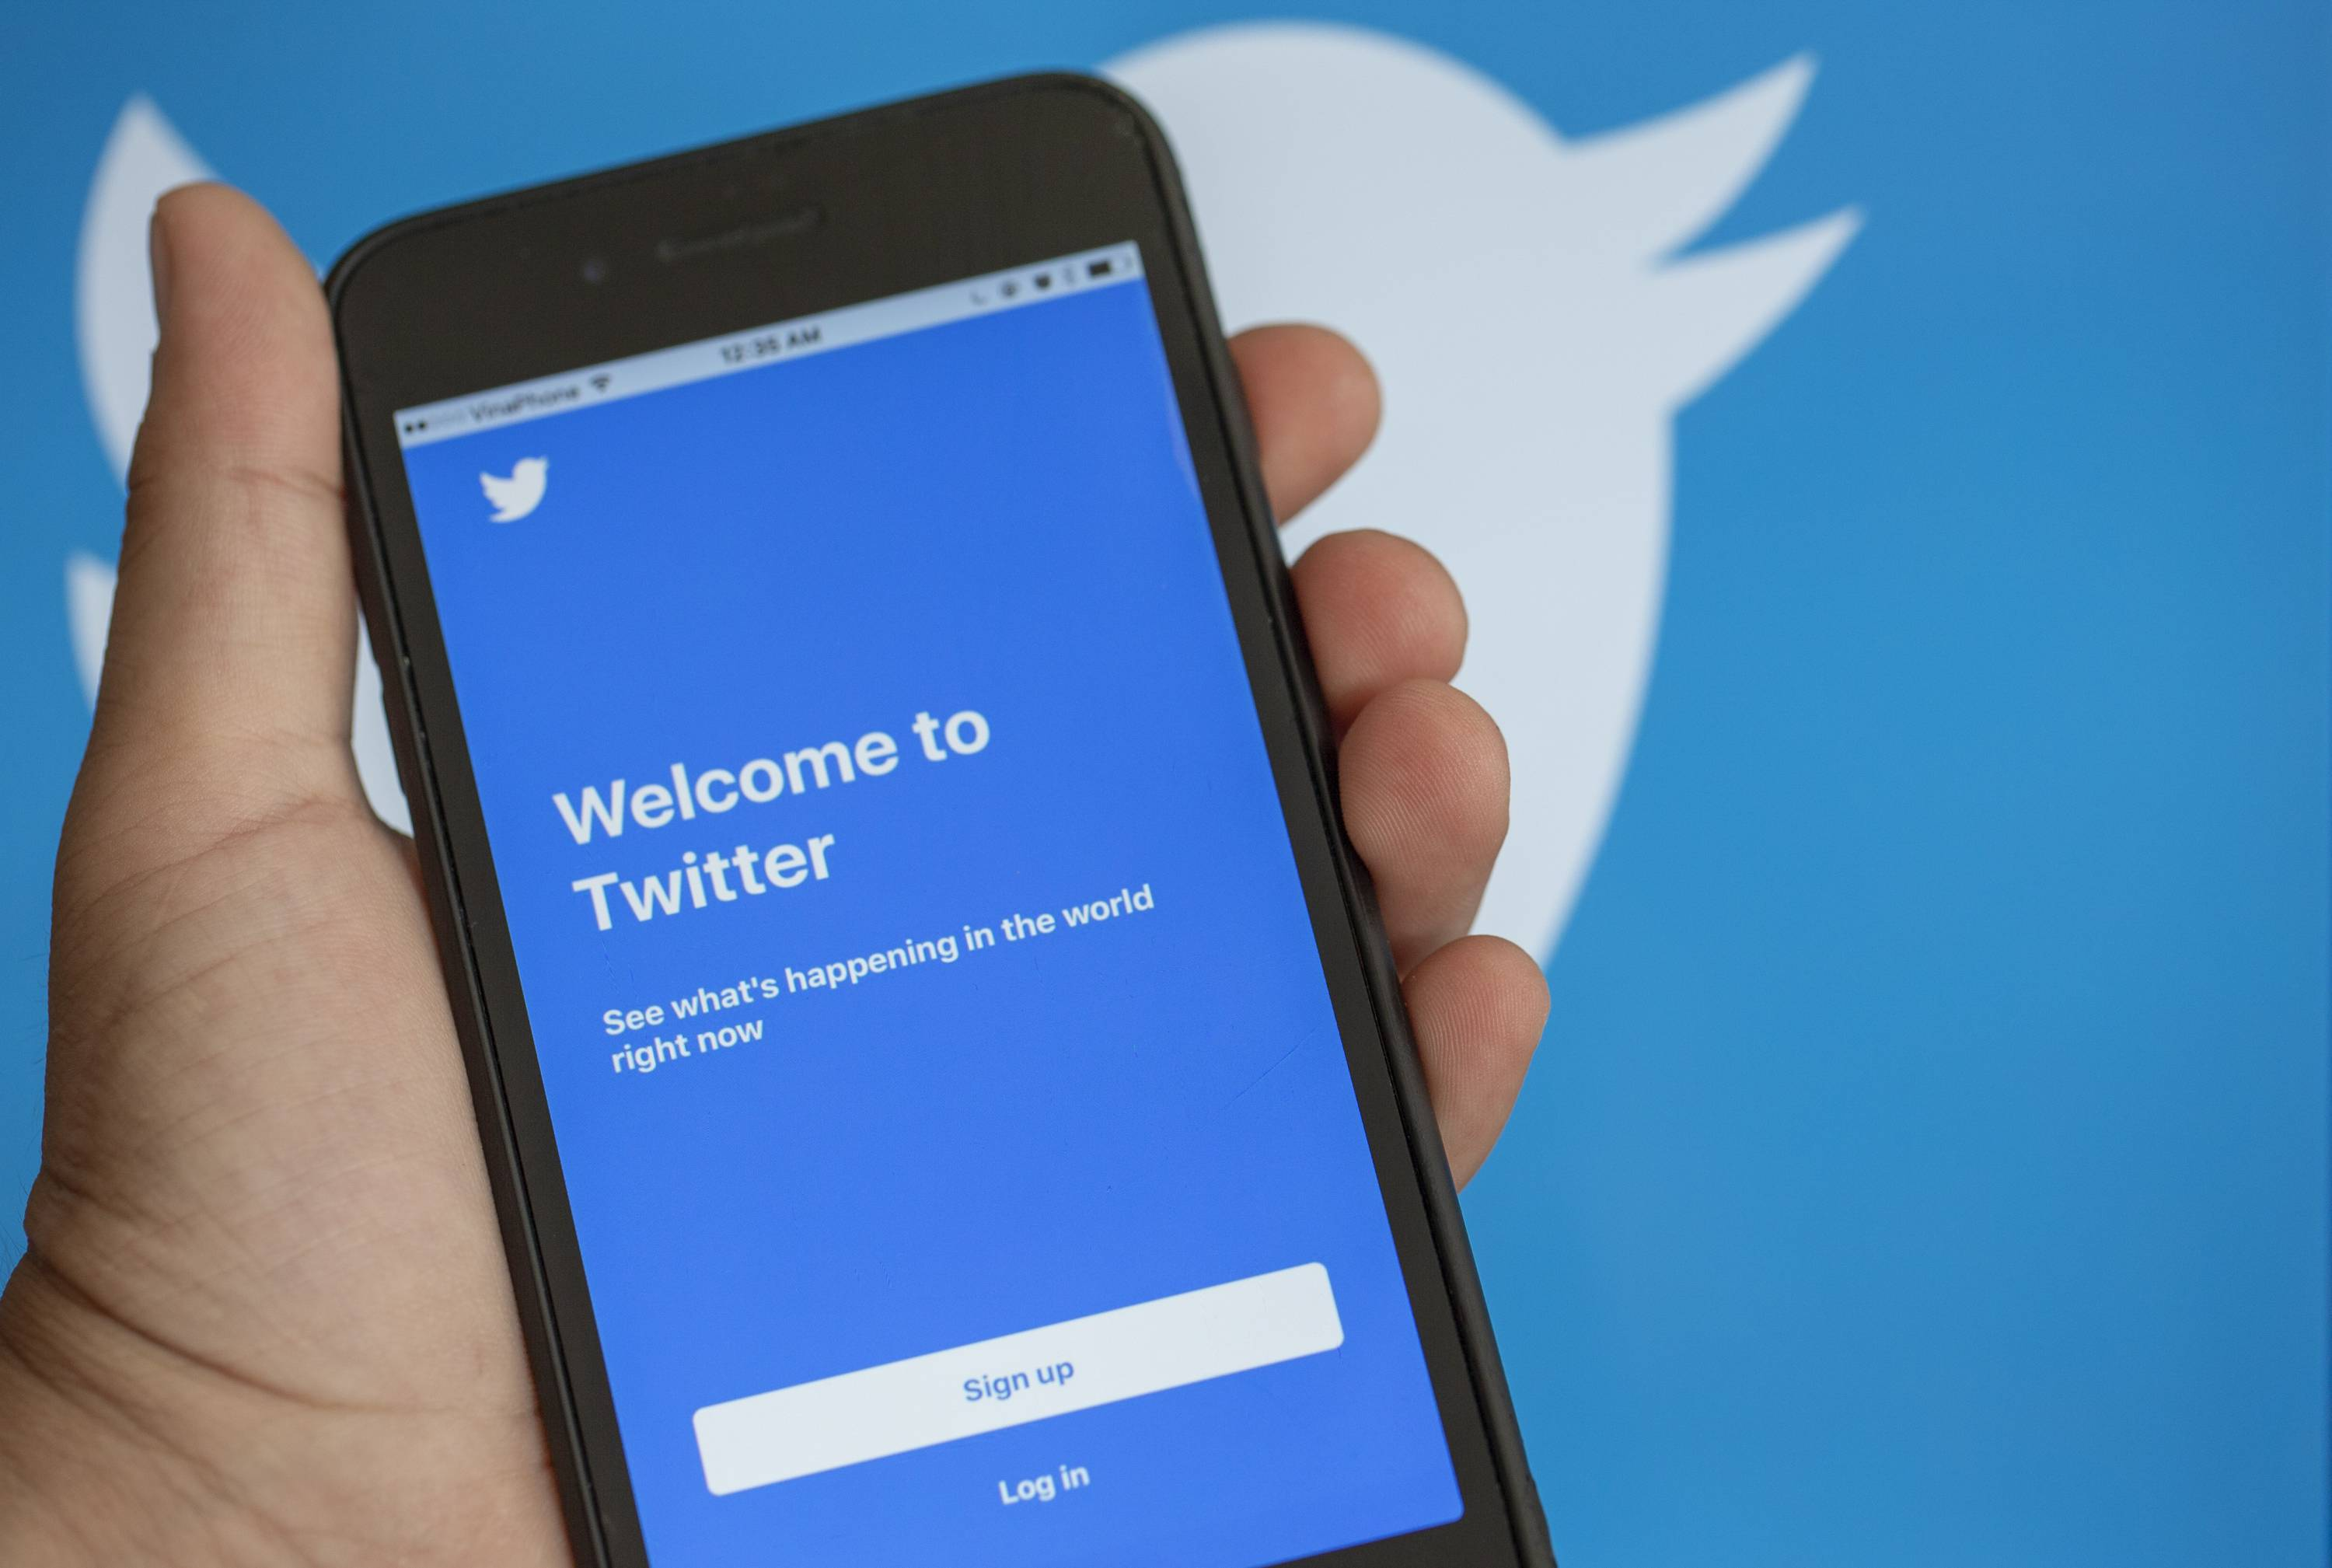 'Twitter' online news and social networking service application